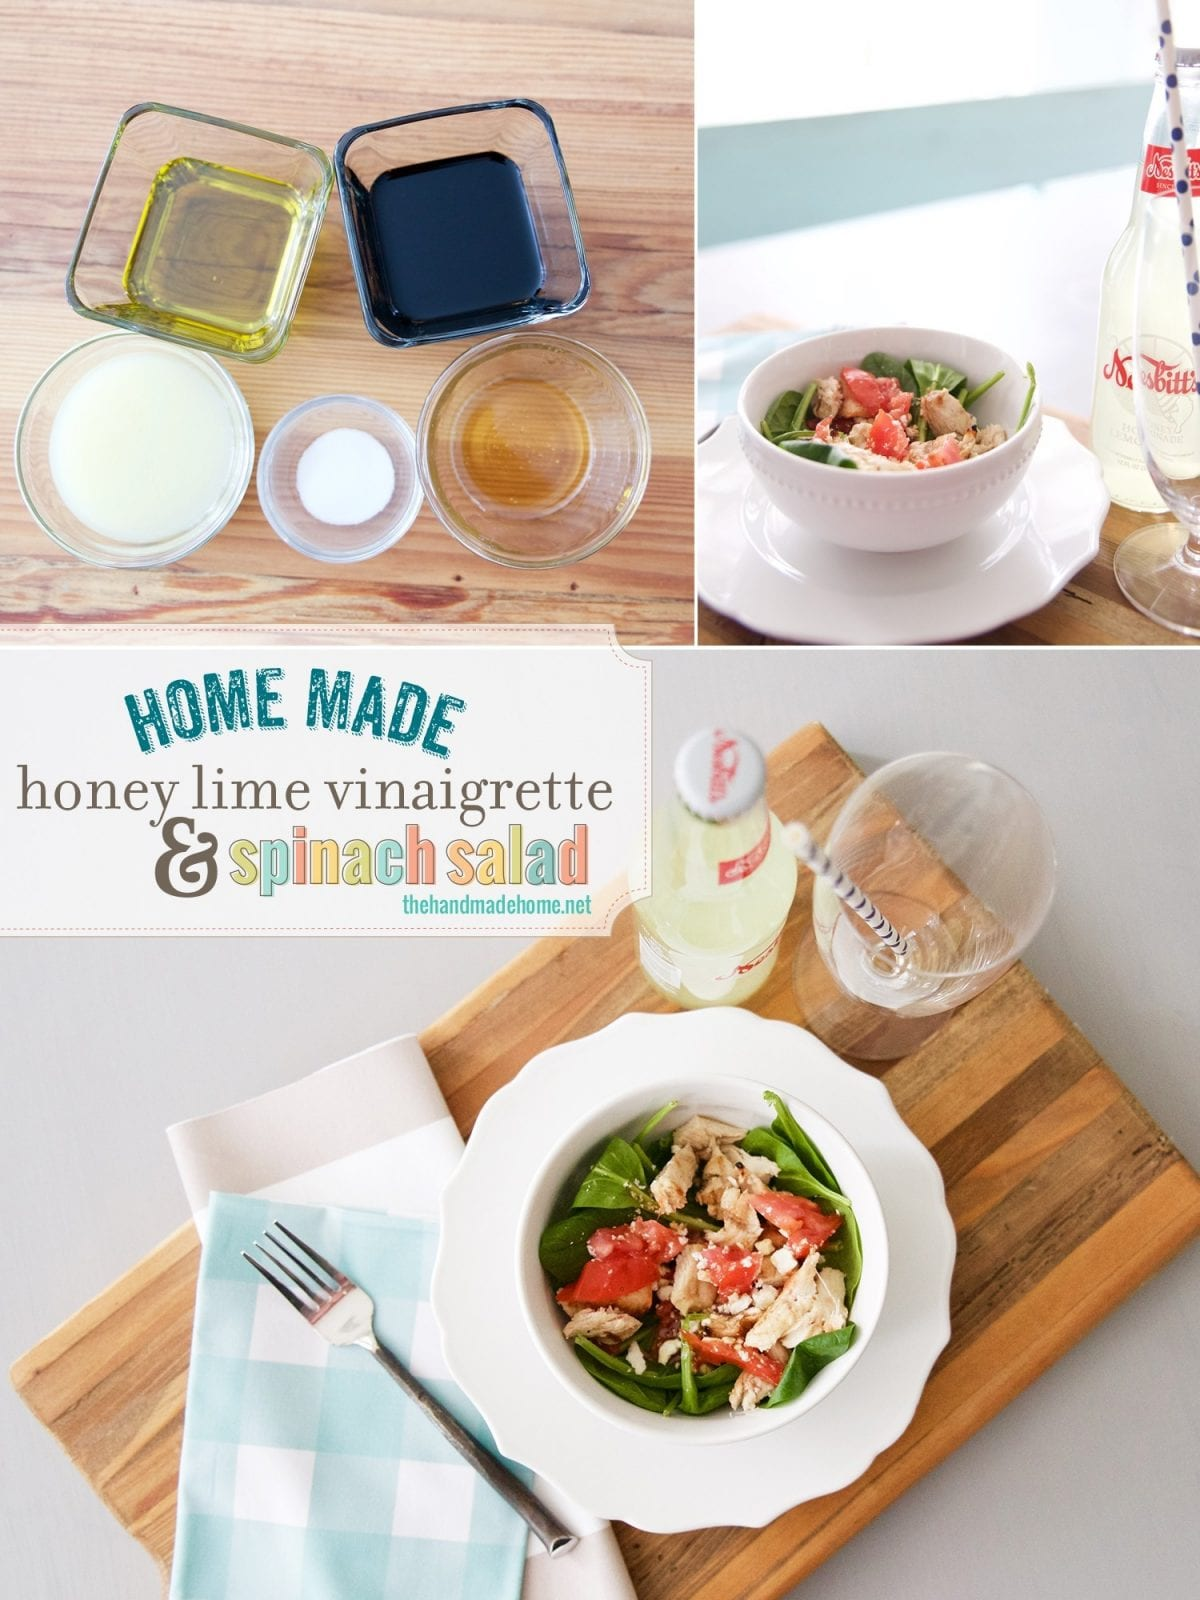 homemade_honey_lime_vinaigrette_and_spinach_salad